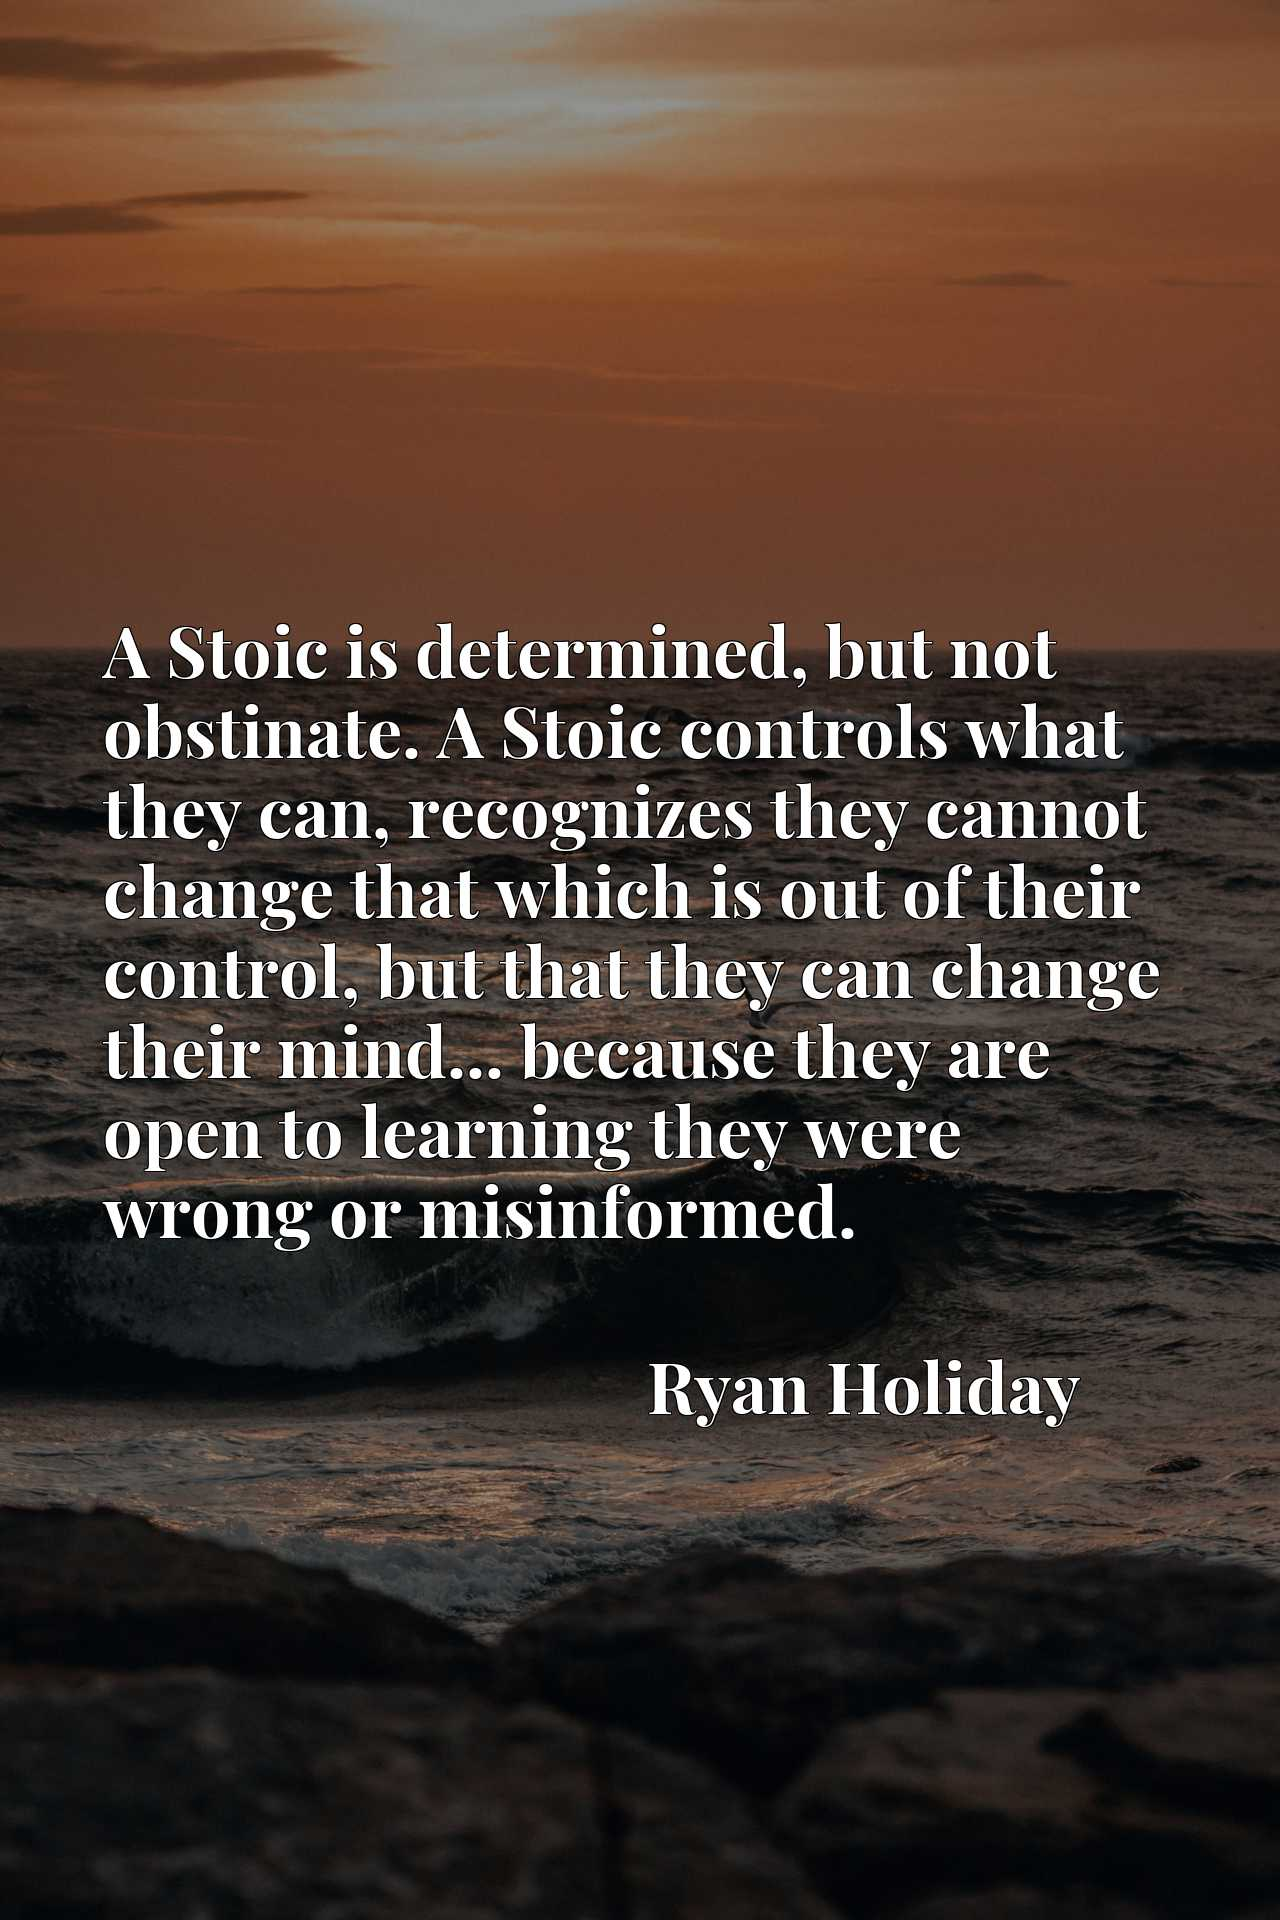 A Stoic is determined, but not obstinate. A Stoic controls what they can, recognizes they cannot change that which is out of their control, but that they can change their mind... because they are open to learning they were wrong or misinformed.